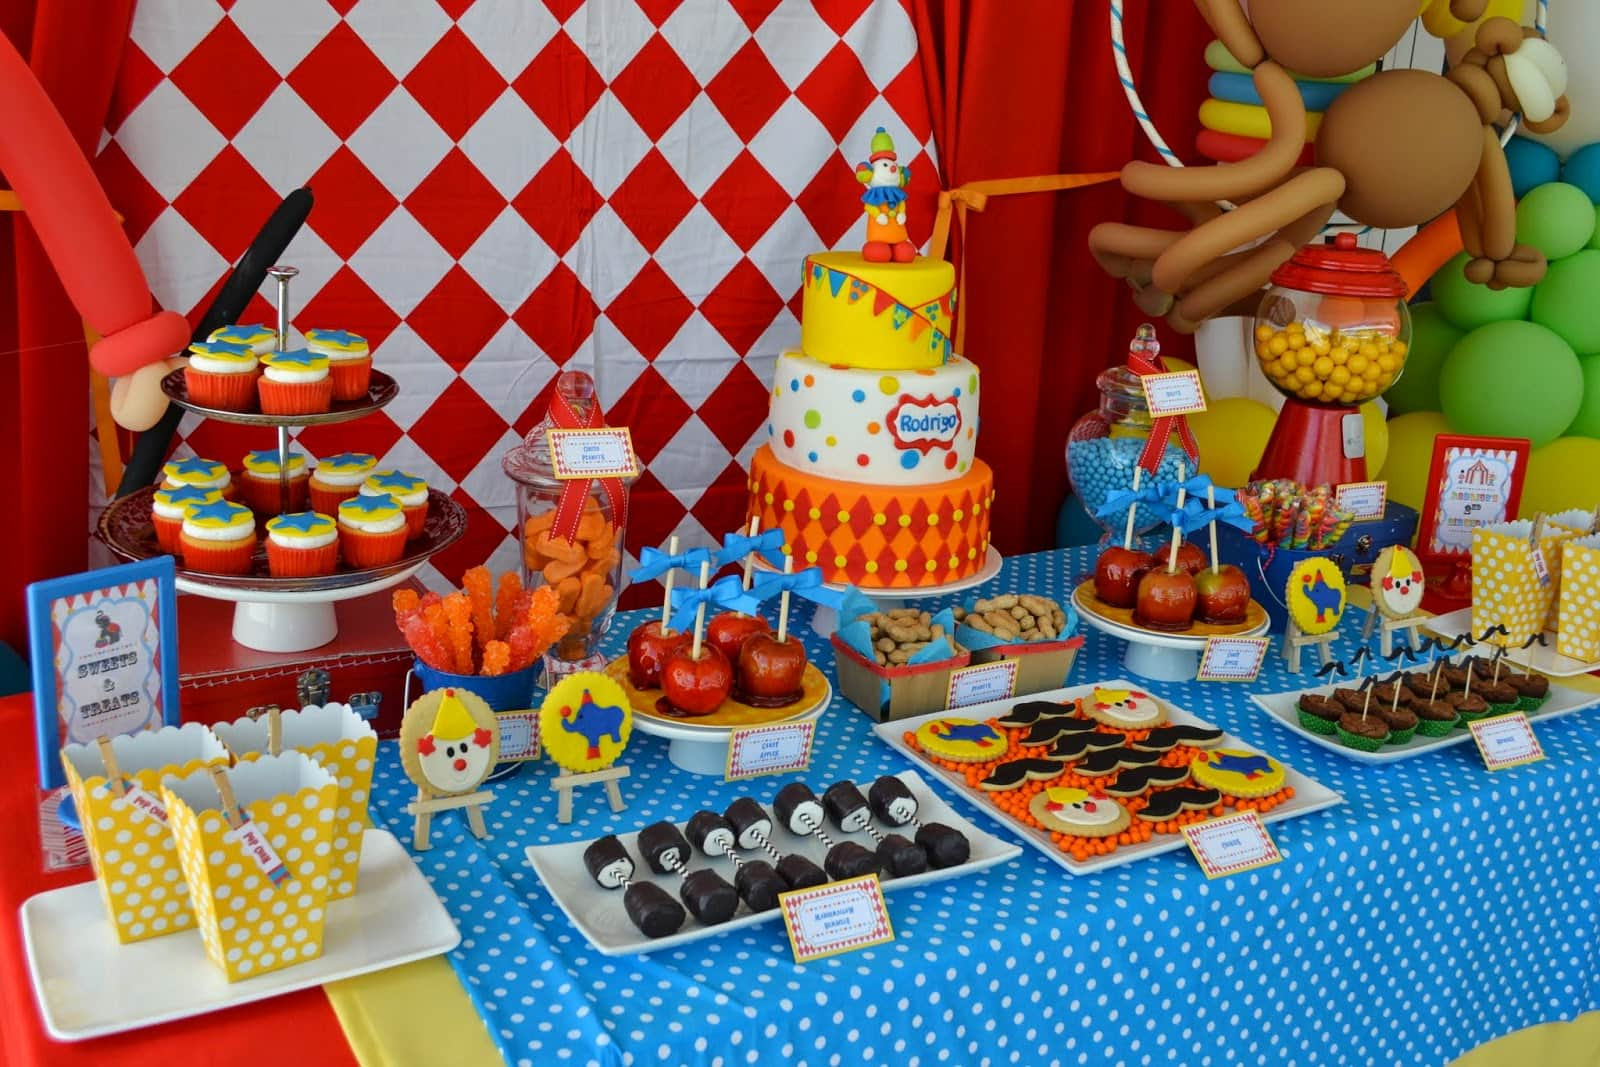 Best ideas about Birthday Ideas For Boys . Save or Pin 33 Awesome Birthday Party Ideas for Boys Now.